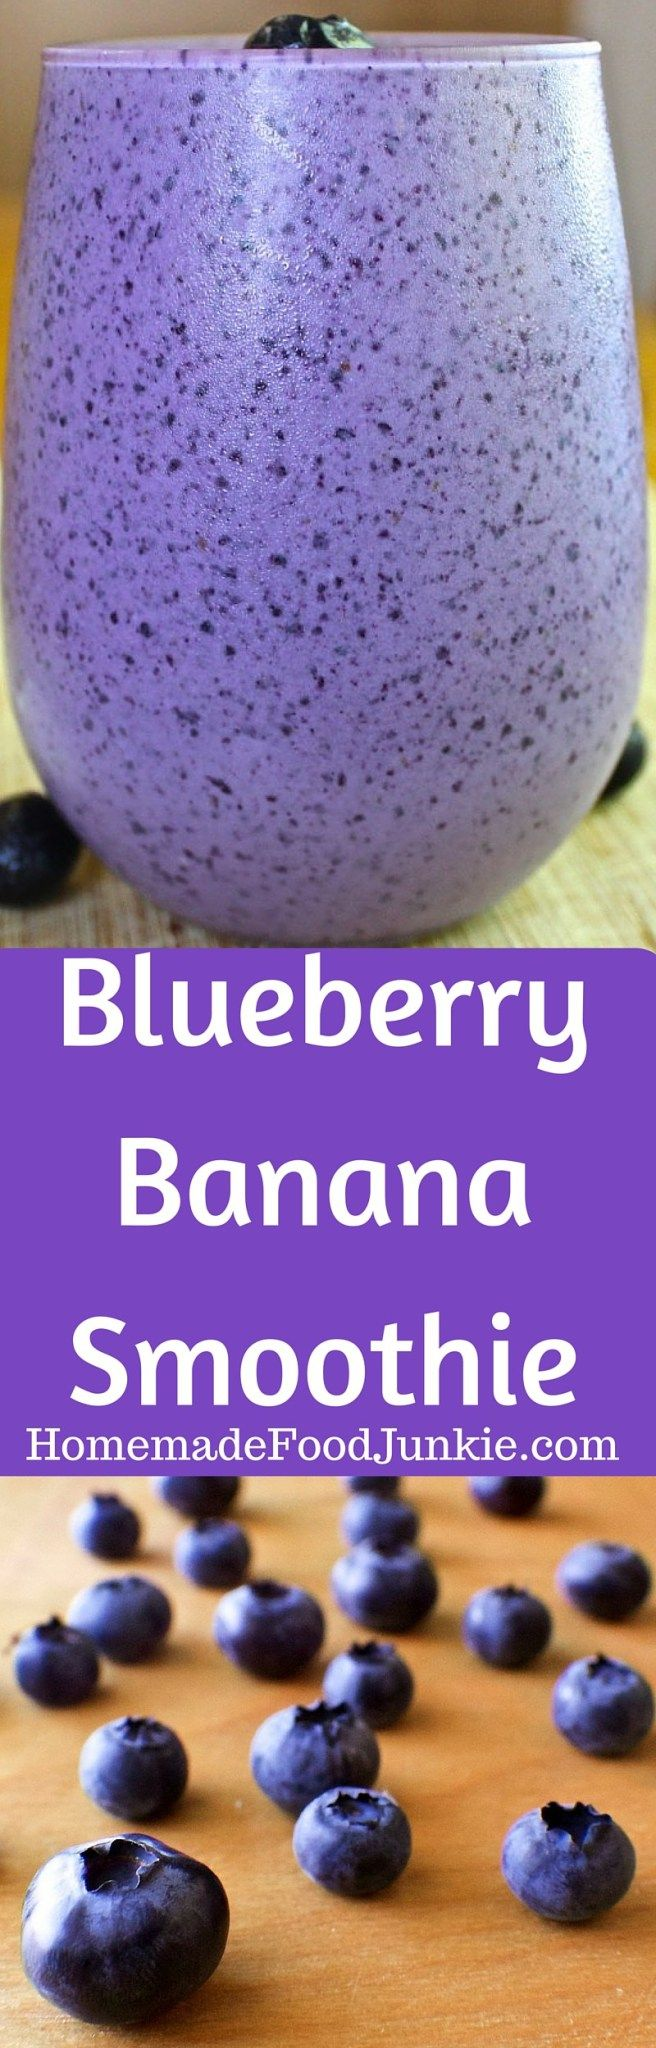 Blueberry Banana Antioxidant Smoothie recipe Packed with healthy nutrients! www.homemadefoodjunkie.com